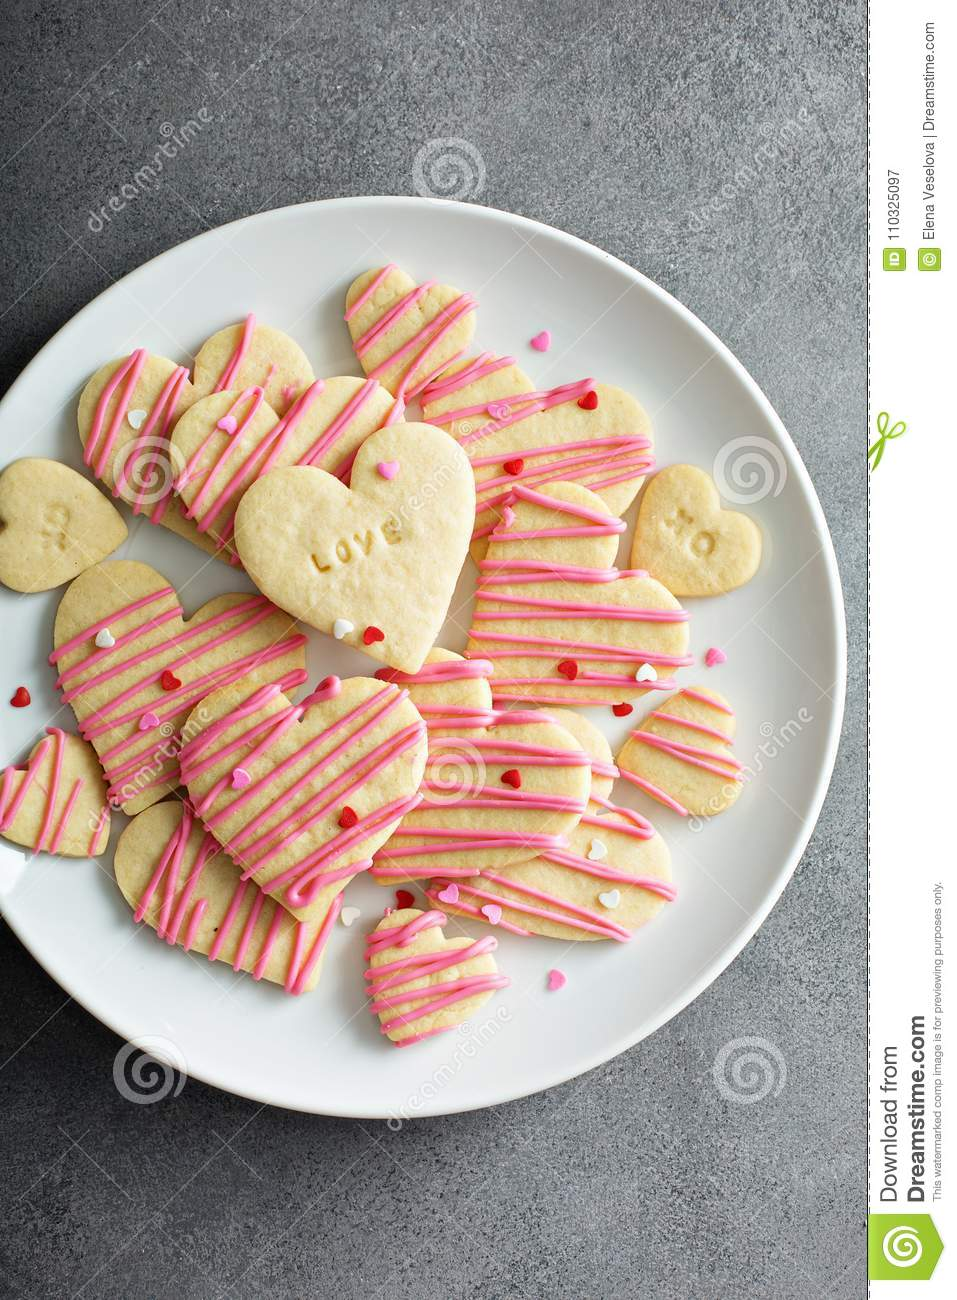 Vanilla Sugar Cut Out Cookies Stock Image Image Of Romance Happy